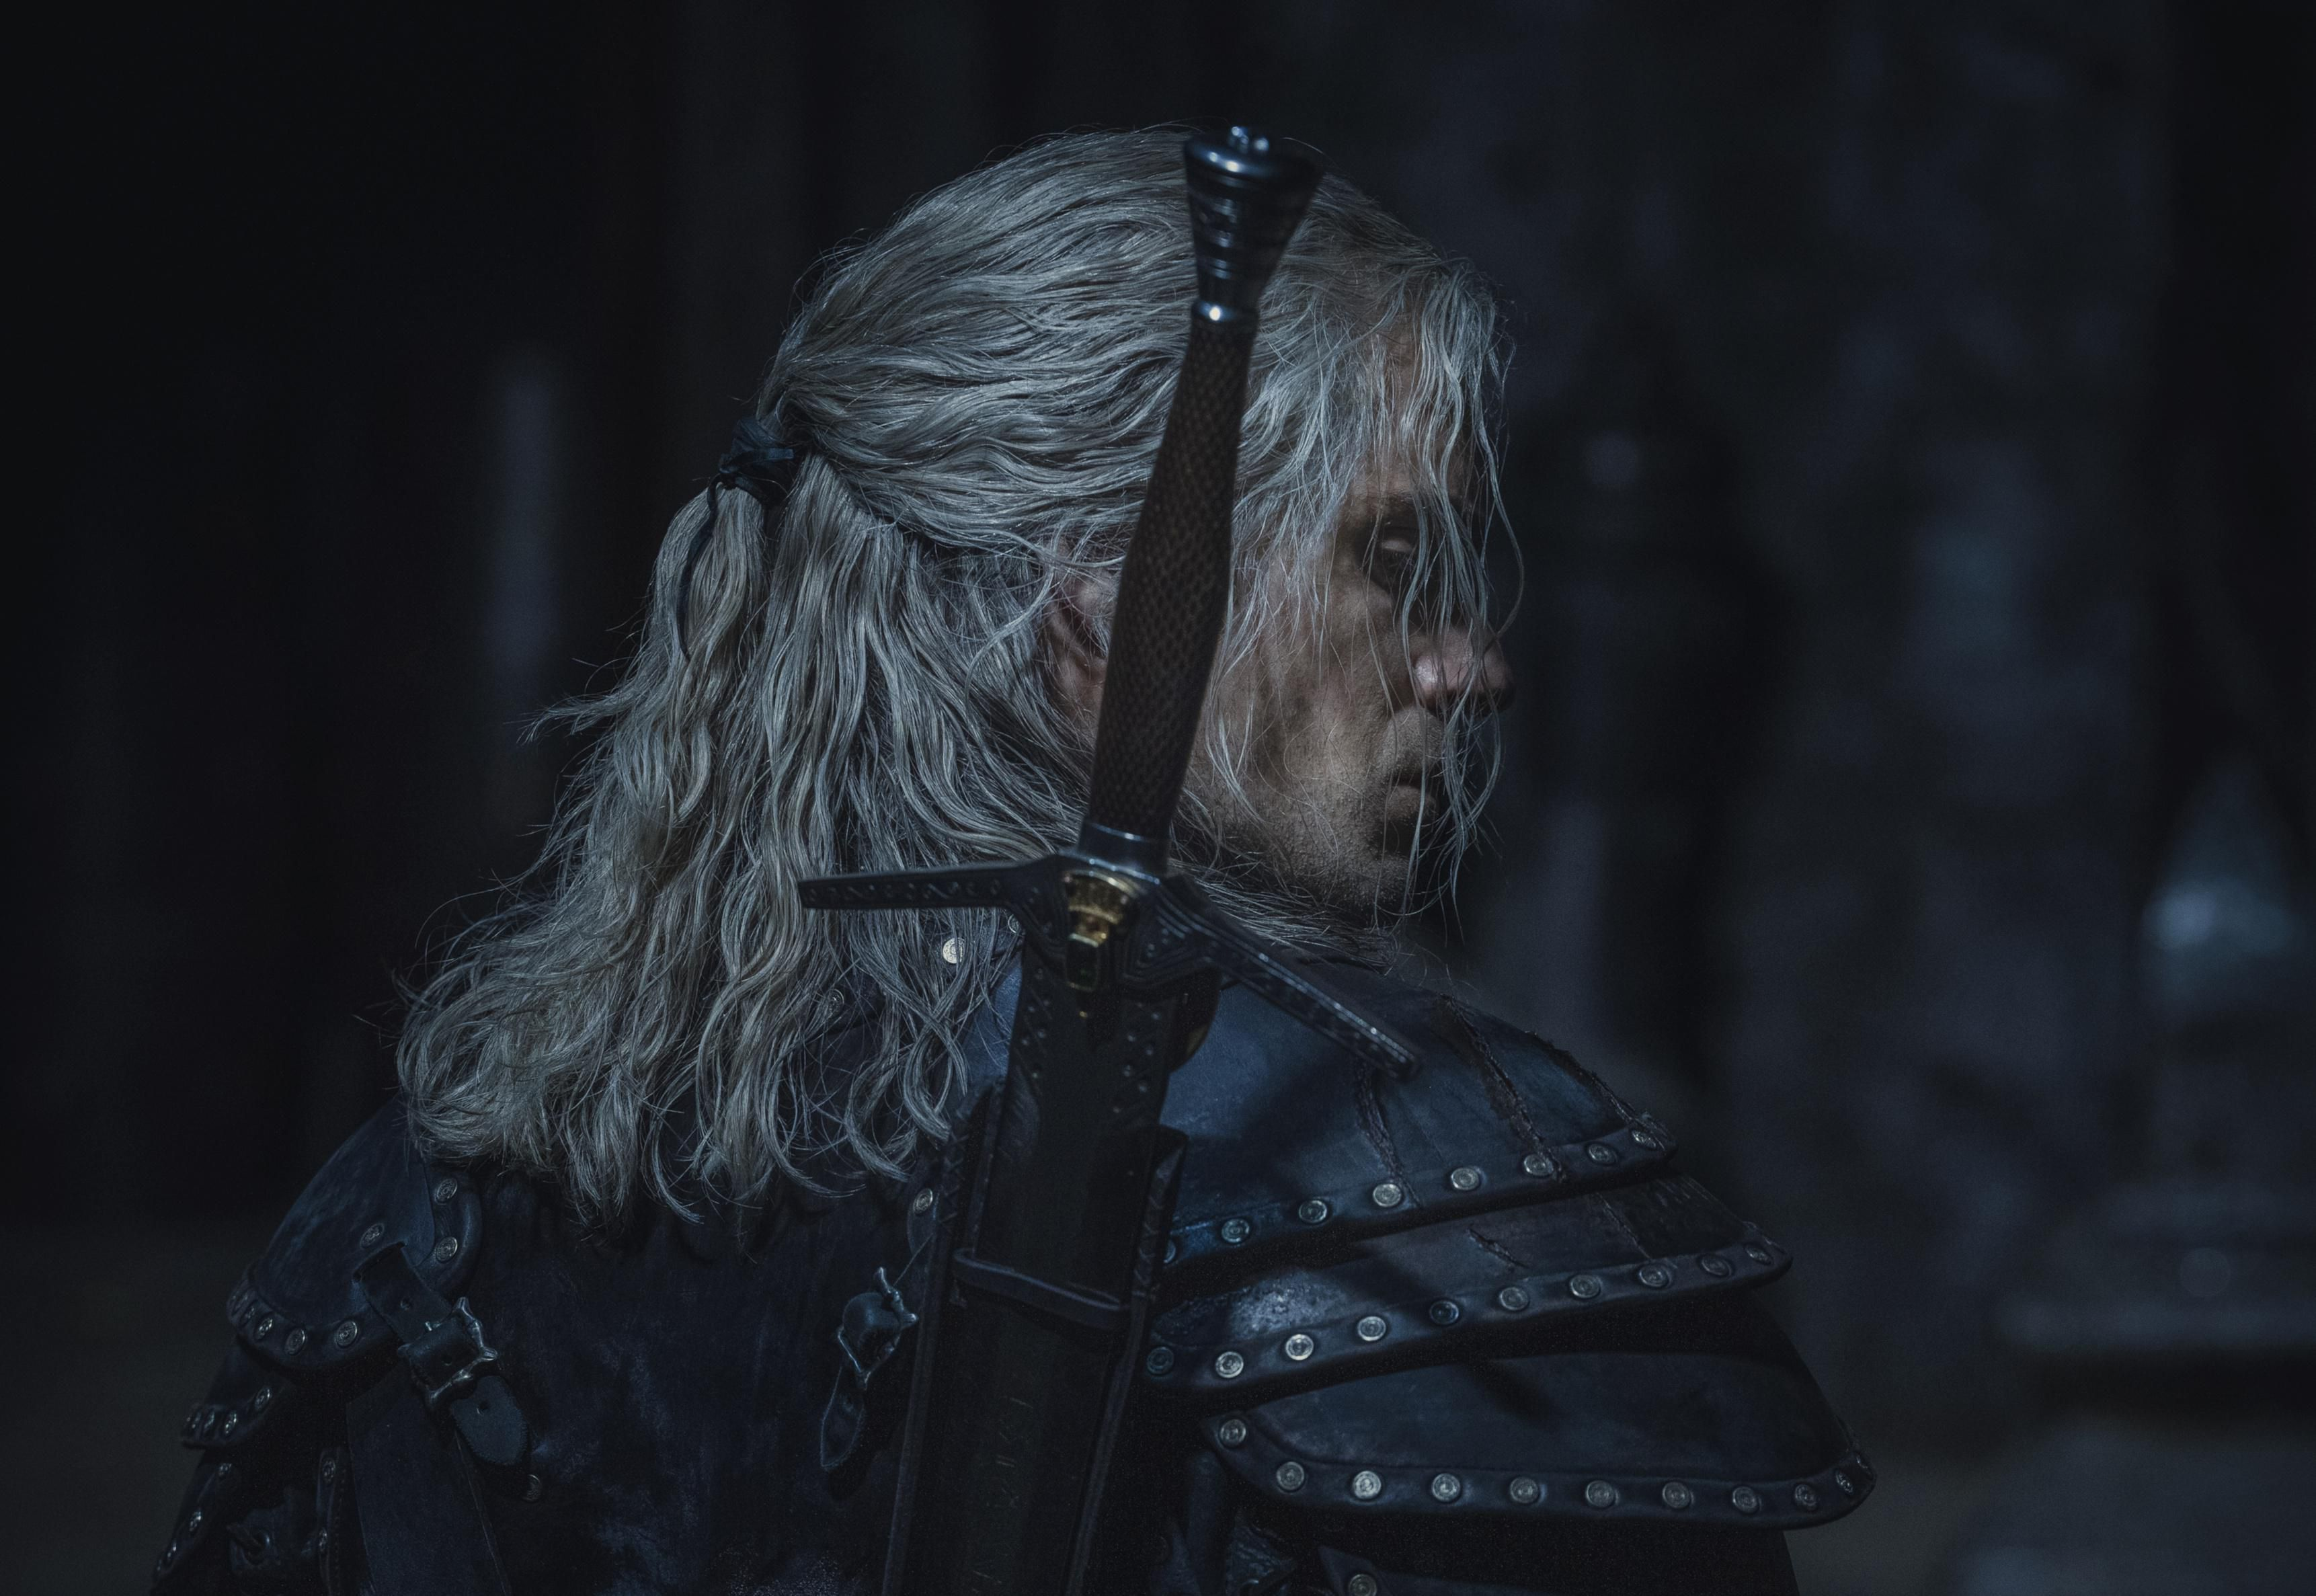 New 'Witcher' Netflix Trailer Gives Us Our First Look At Henry Cavill's Geralt In Season 2